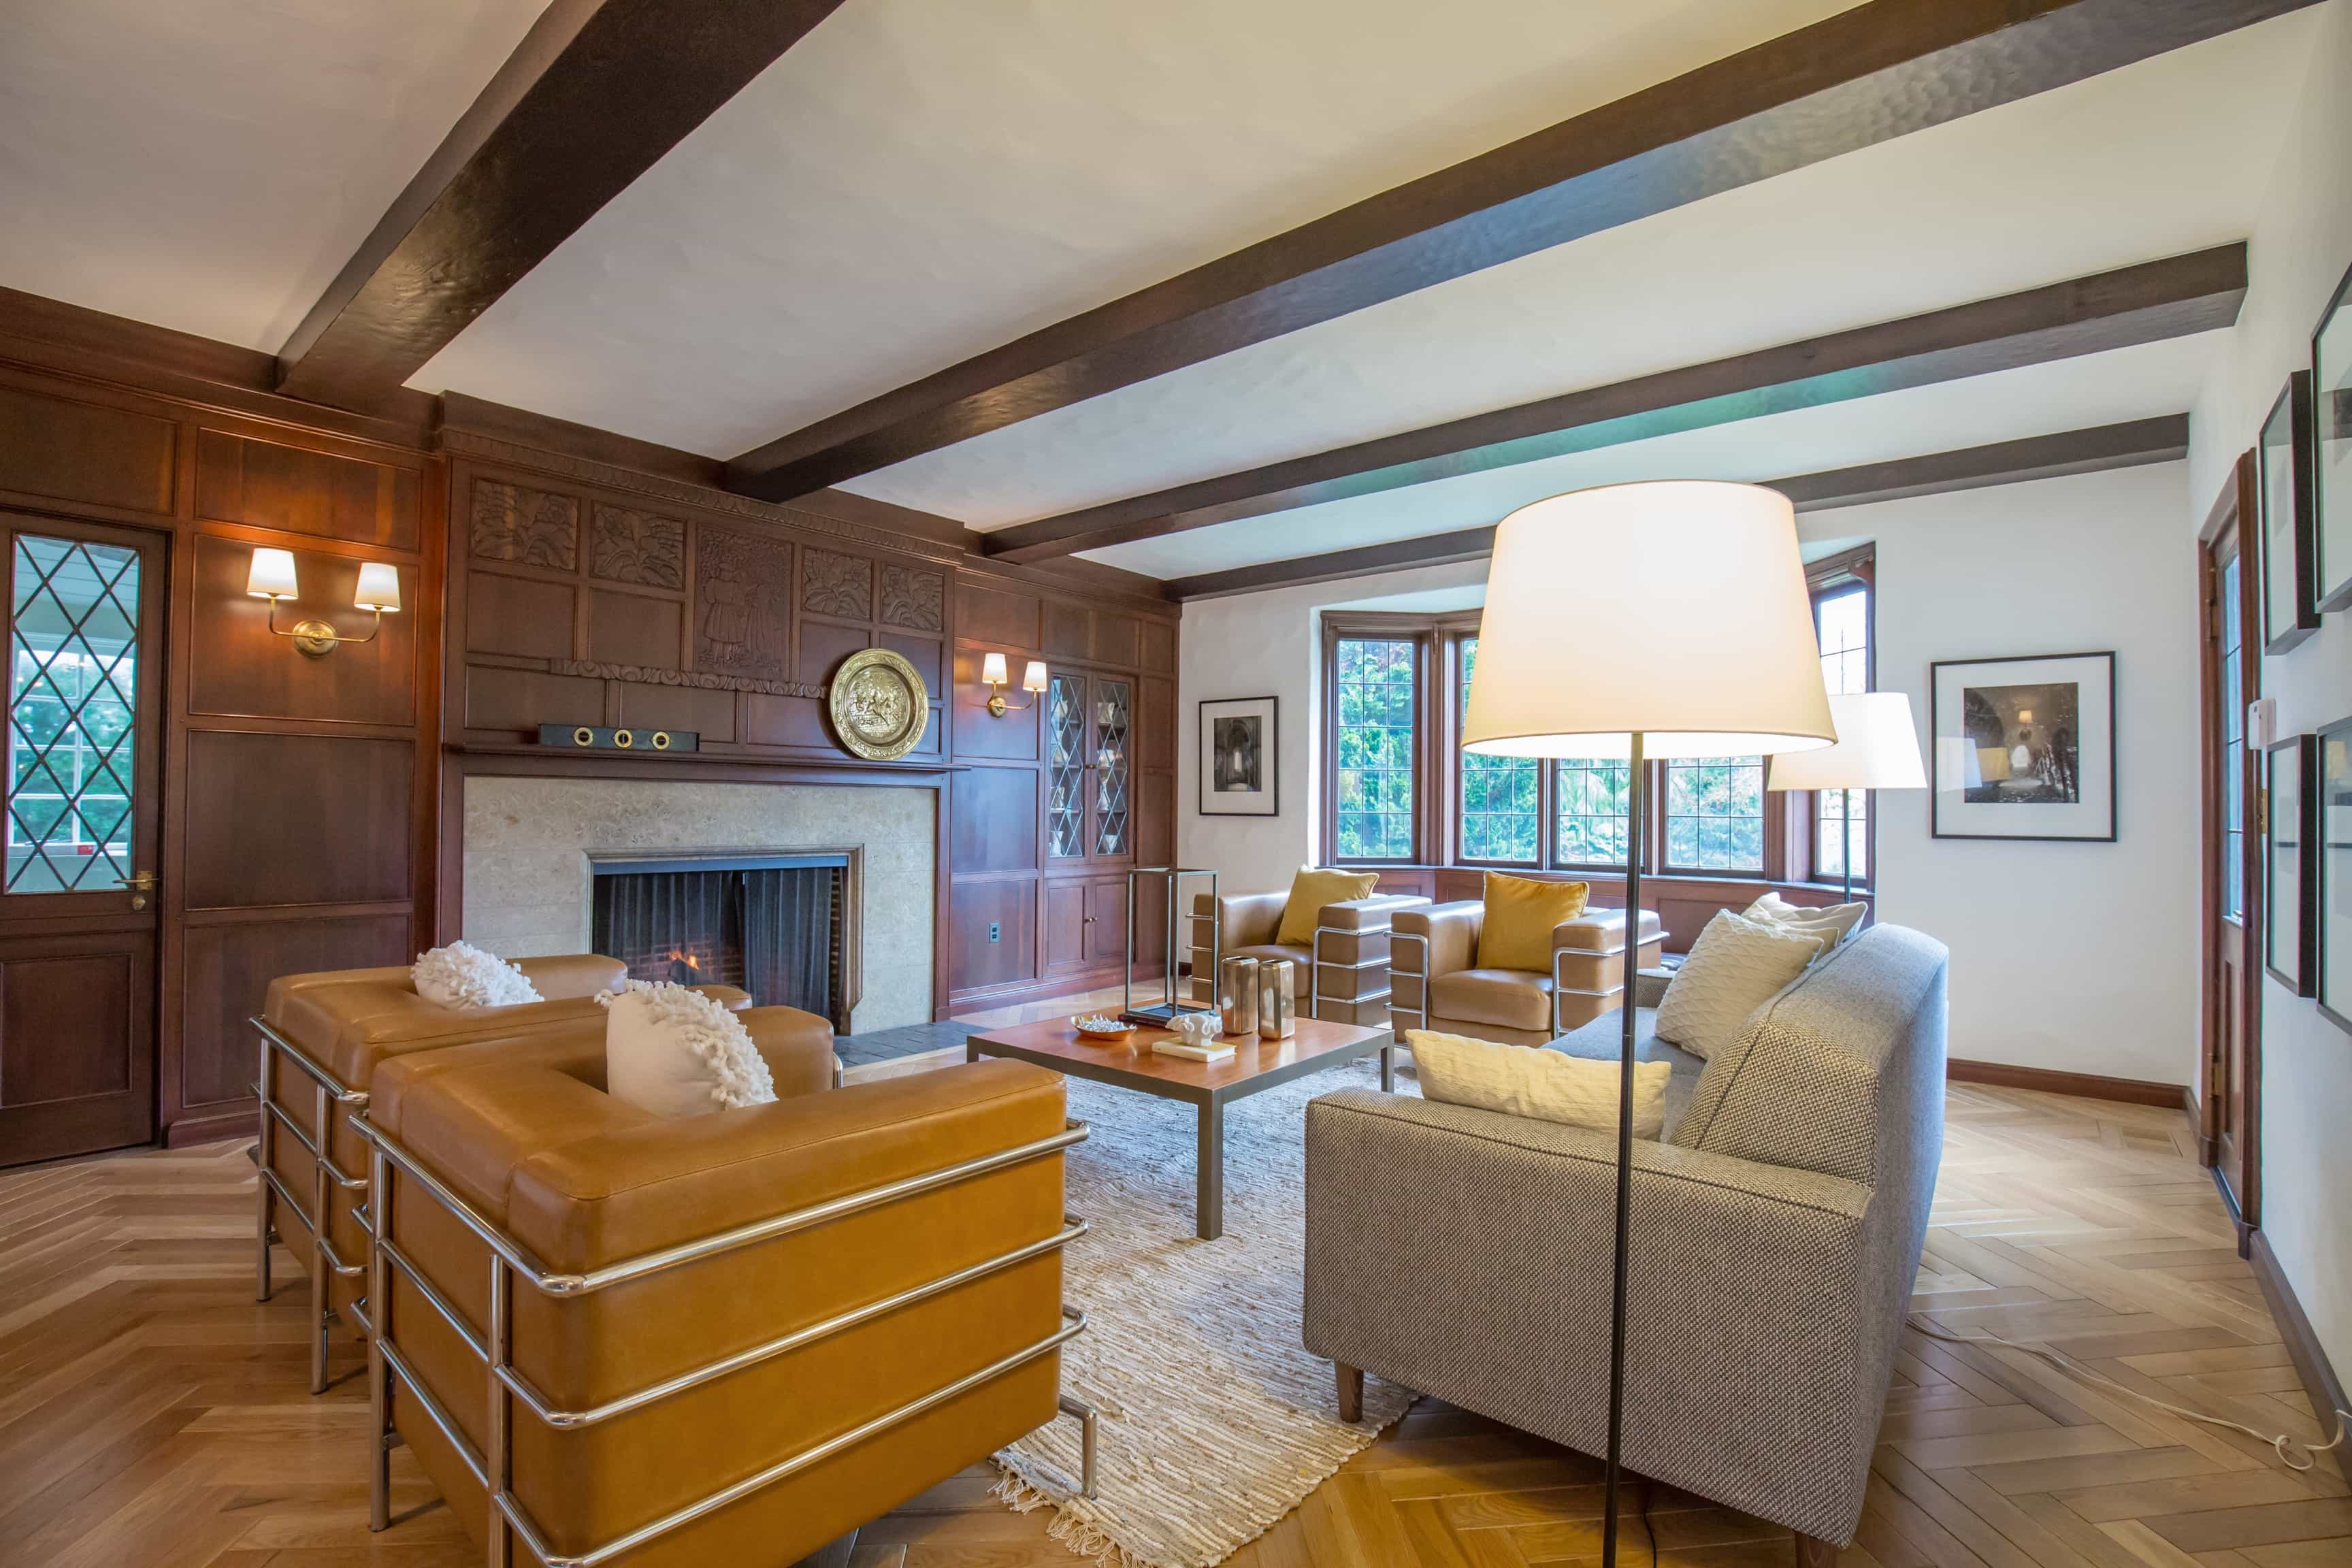 Featured Image of Luxury Craftsman Living Room With Beams